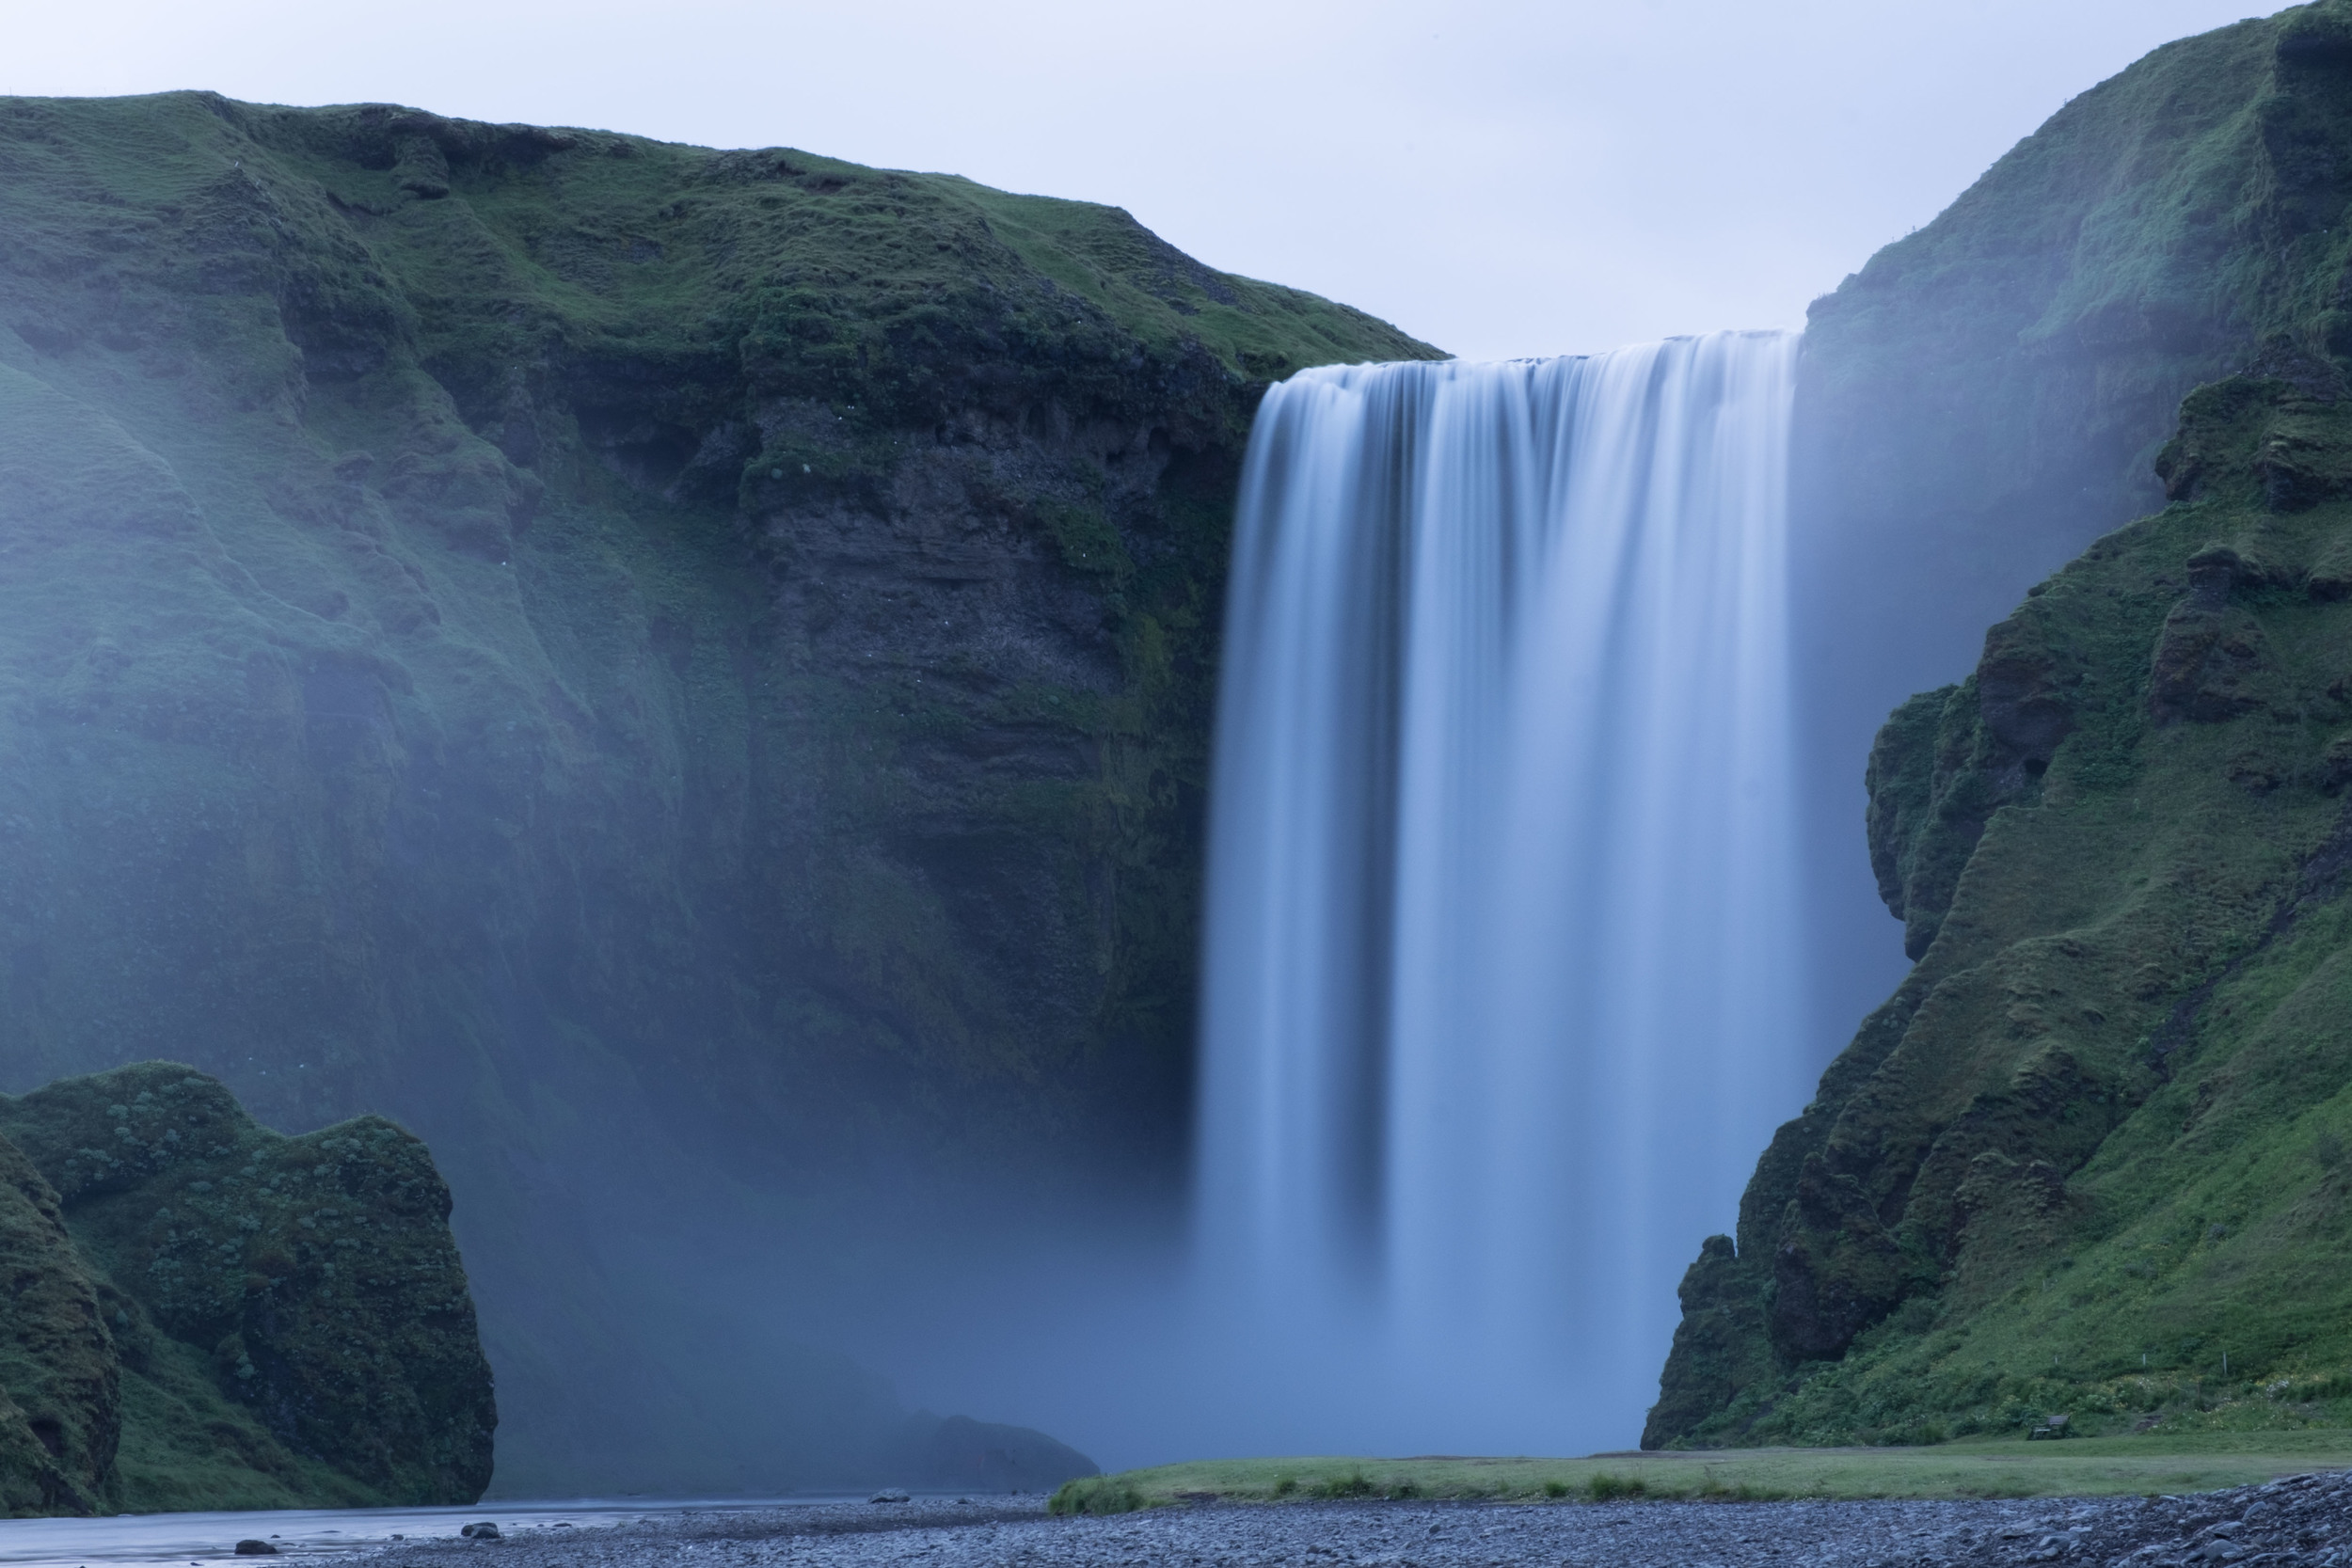 The massive Skogafoss from afar, I was taking this shot just before I met @barefootandbearded for the first time.